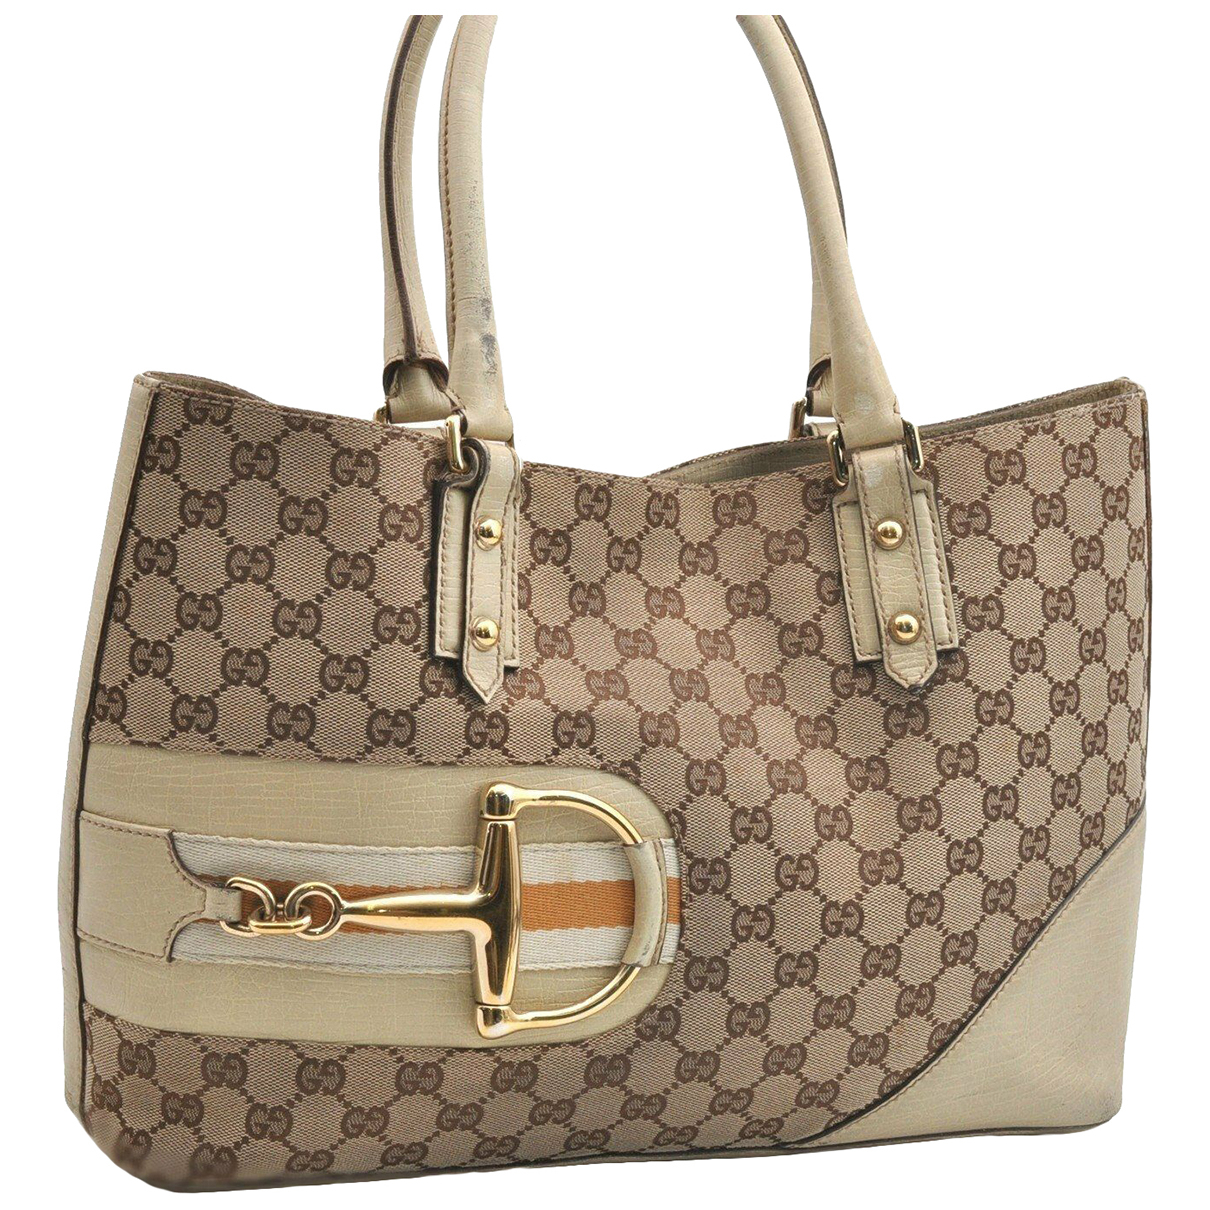 Gucci N Brown Cloth handbag for Women N